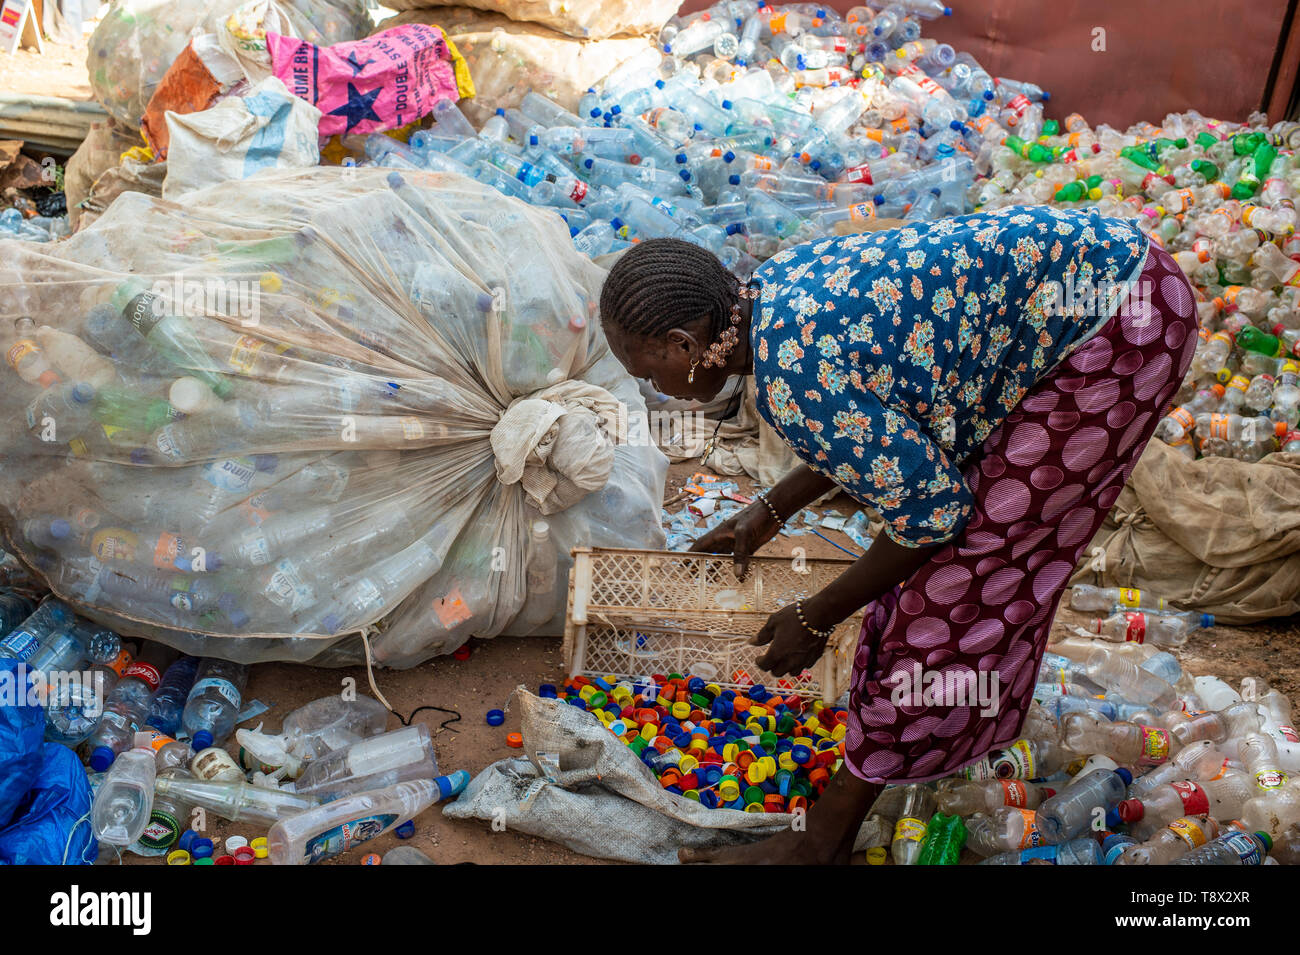 Woman collects and recycles plastic bottles in the Boinsyaaré market, in the Burkina Faso capital Ouagadougou, Africa. - Stock Image